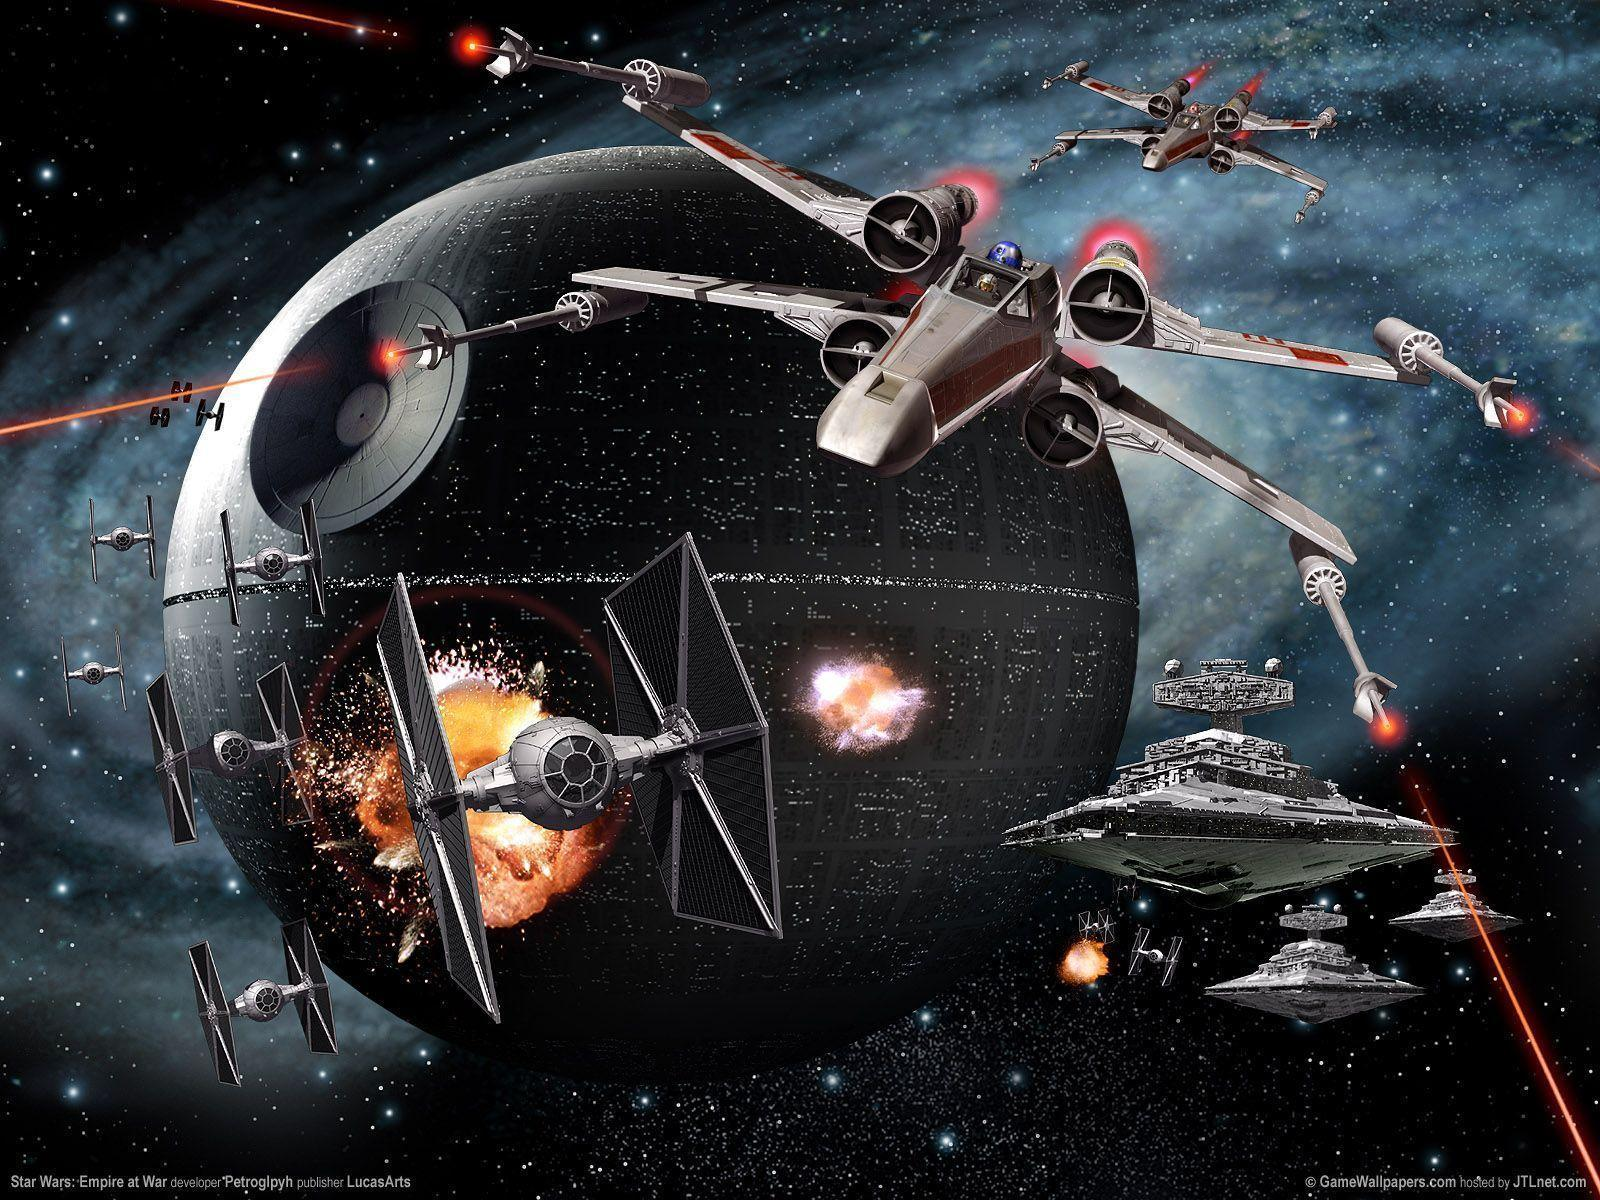 Star Wars HD Wallpapers - HD Wallpapers Hi5